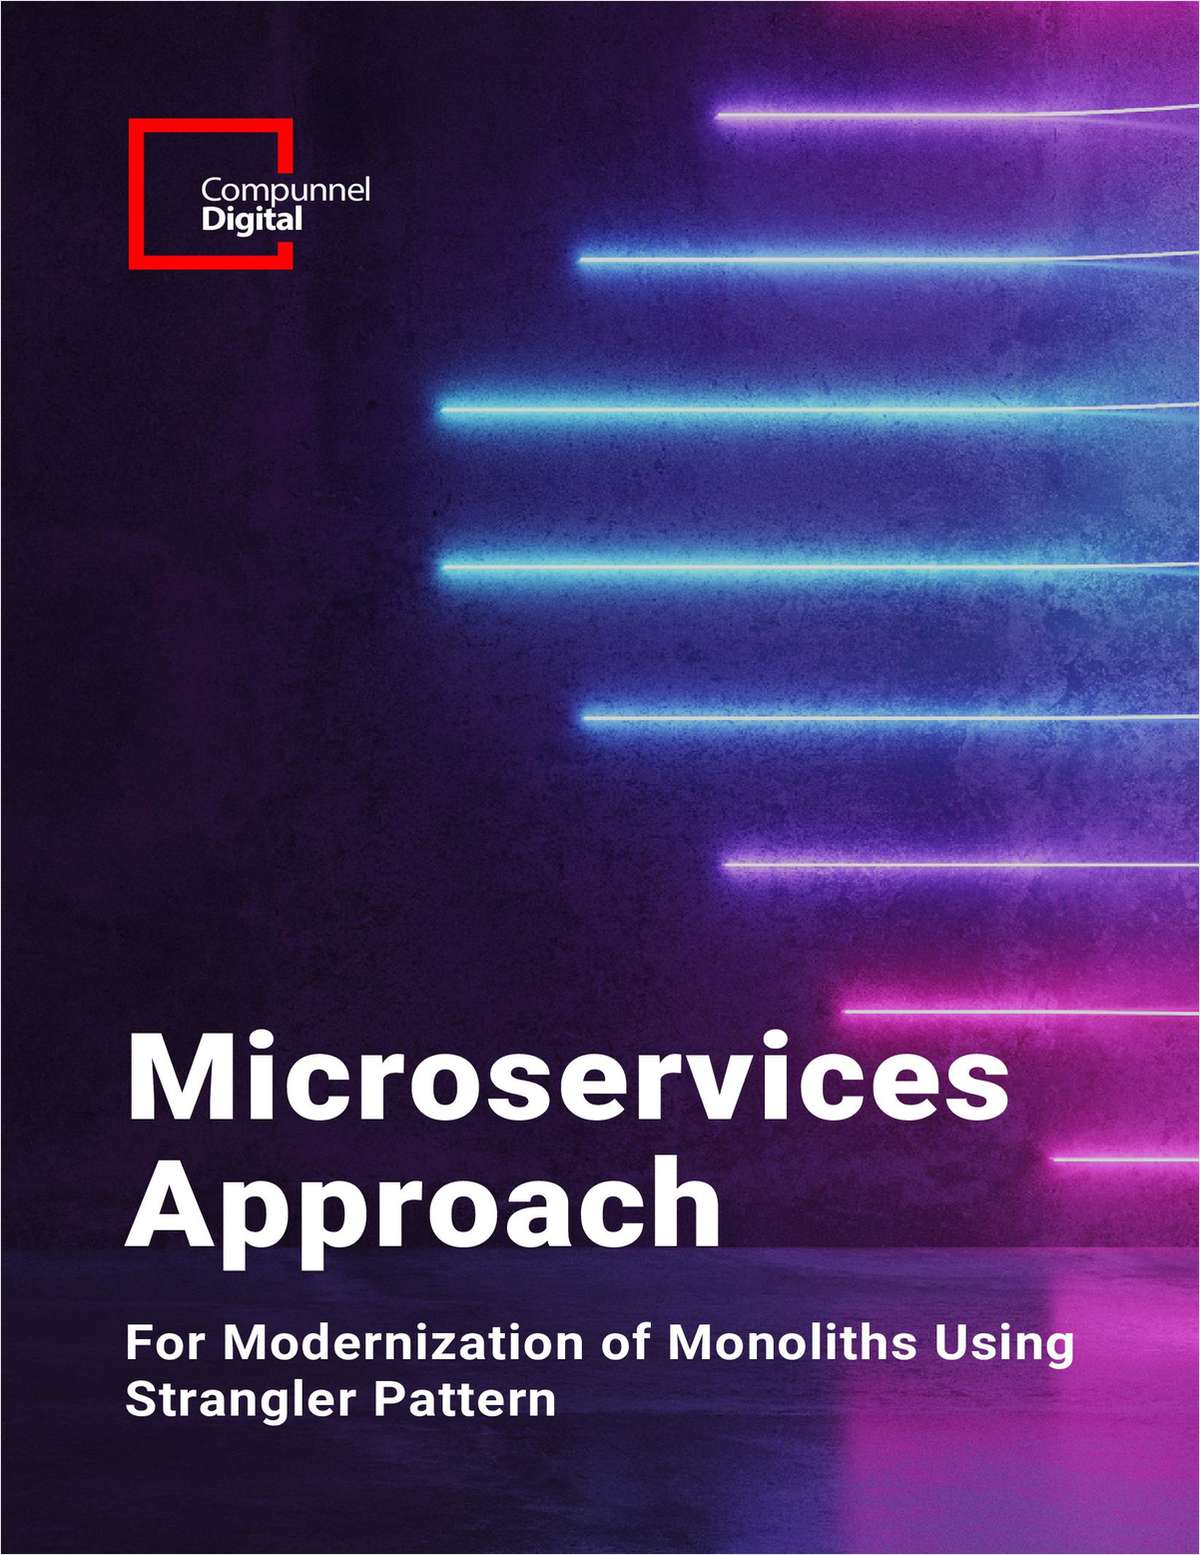 Microservices Approach For Modernization of Monoliths Using Strangler Pattern